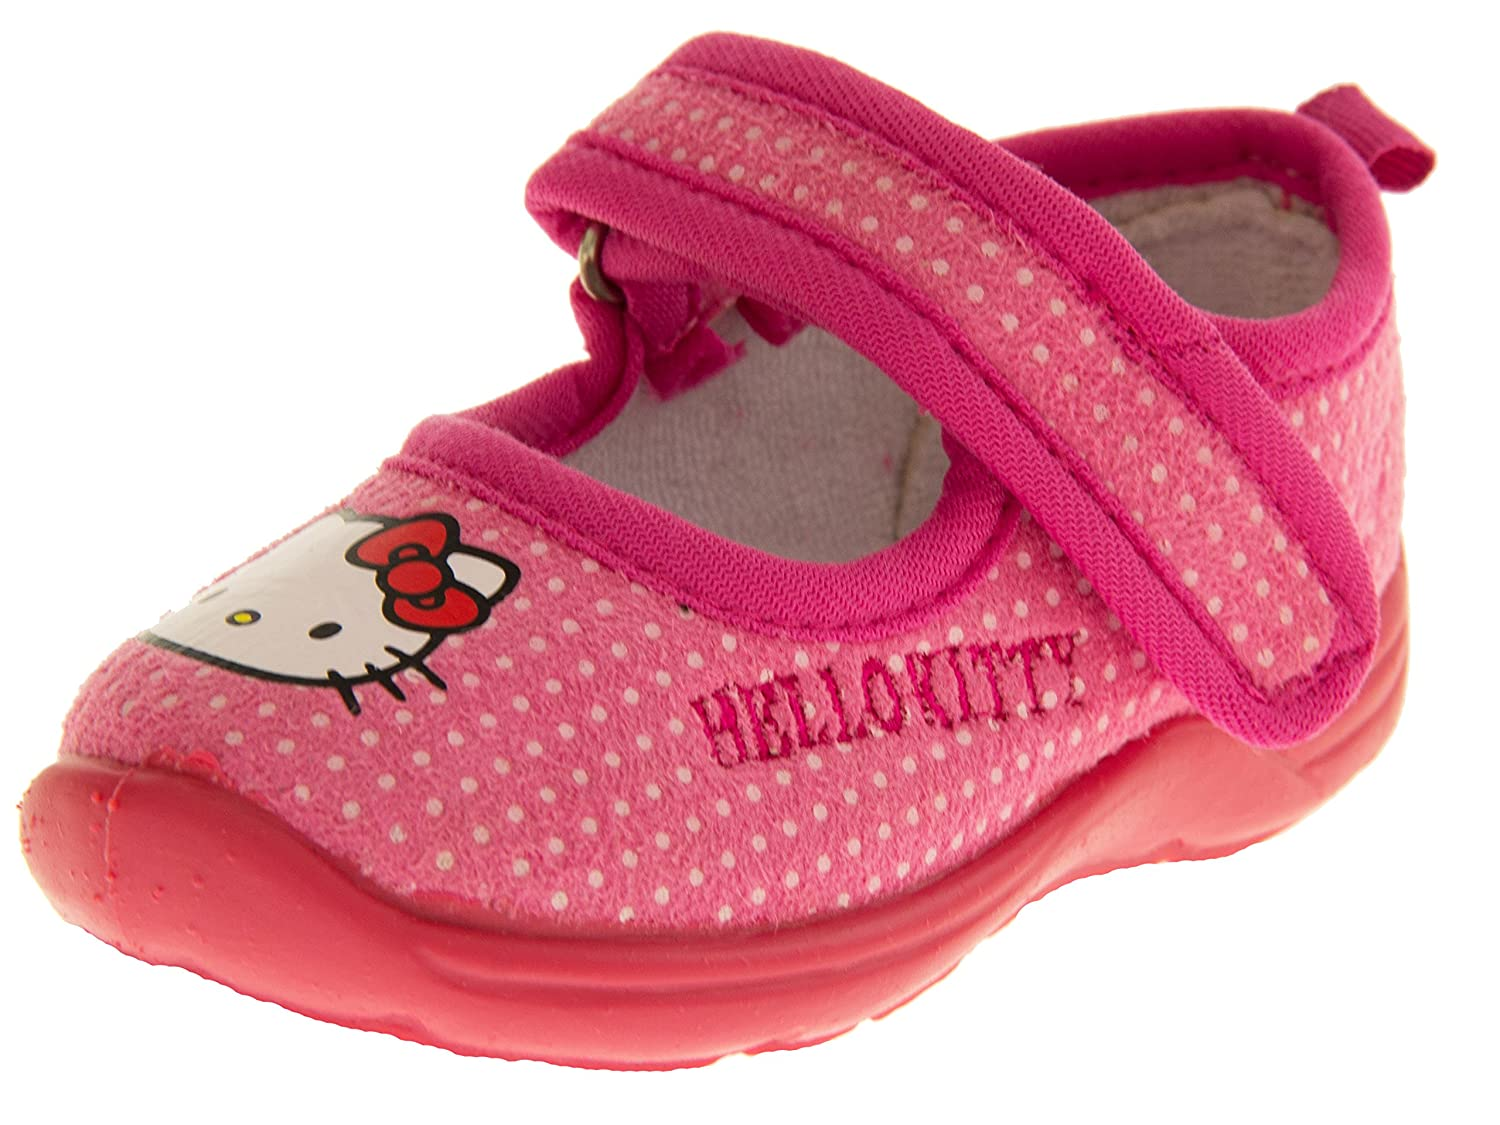 Confortable et chaud pour fille HELLO KITTY Casual Ballerines Chaussons Mary Jane Chaussures